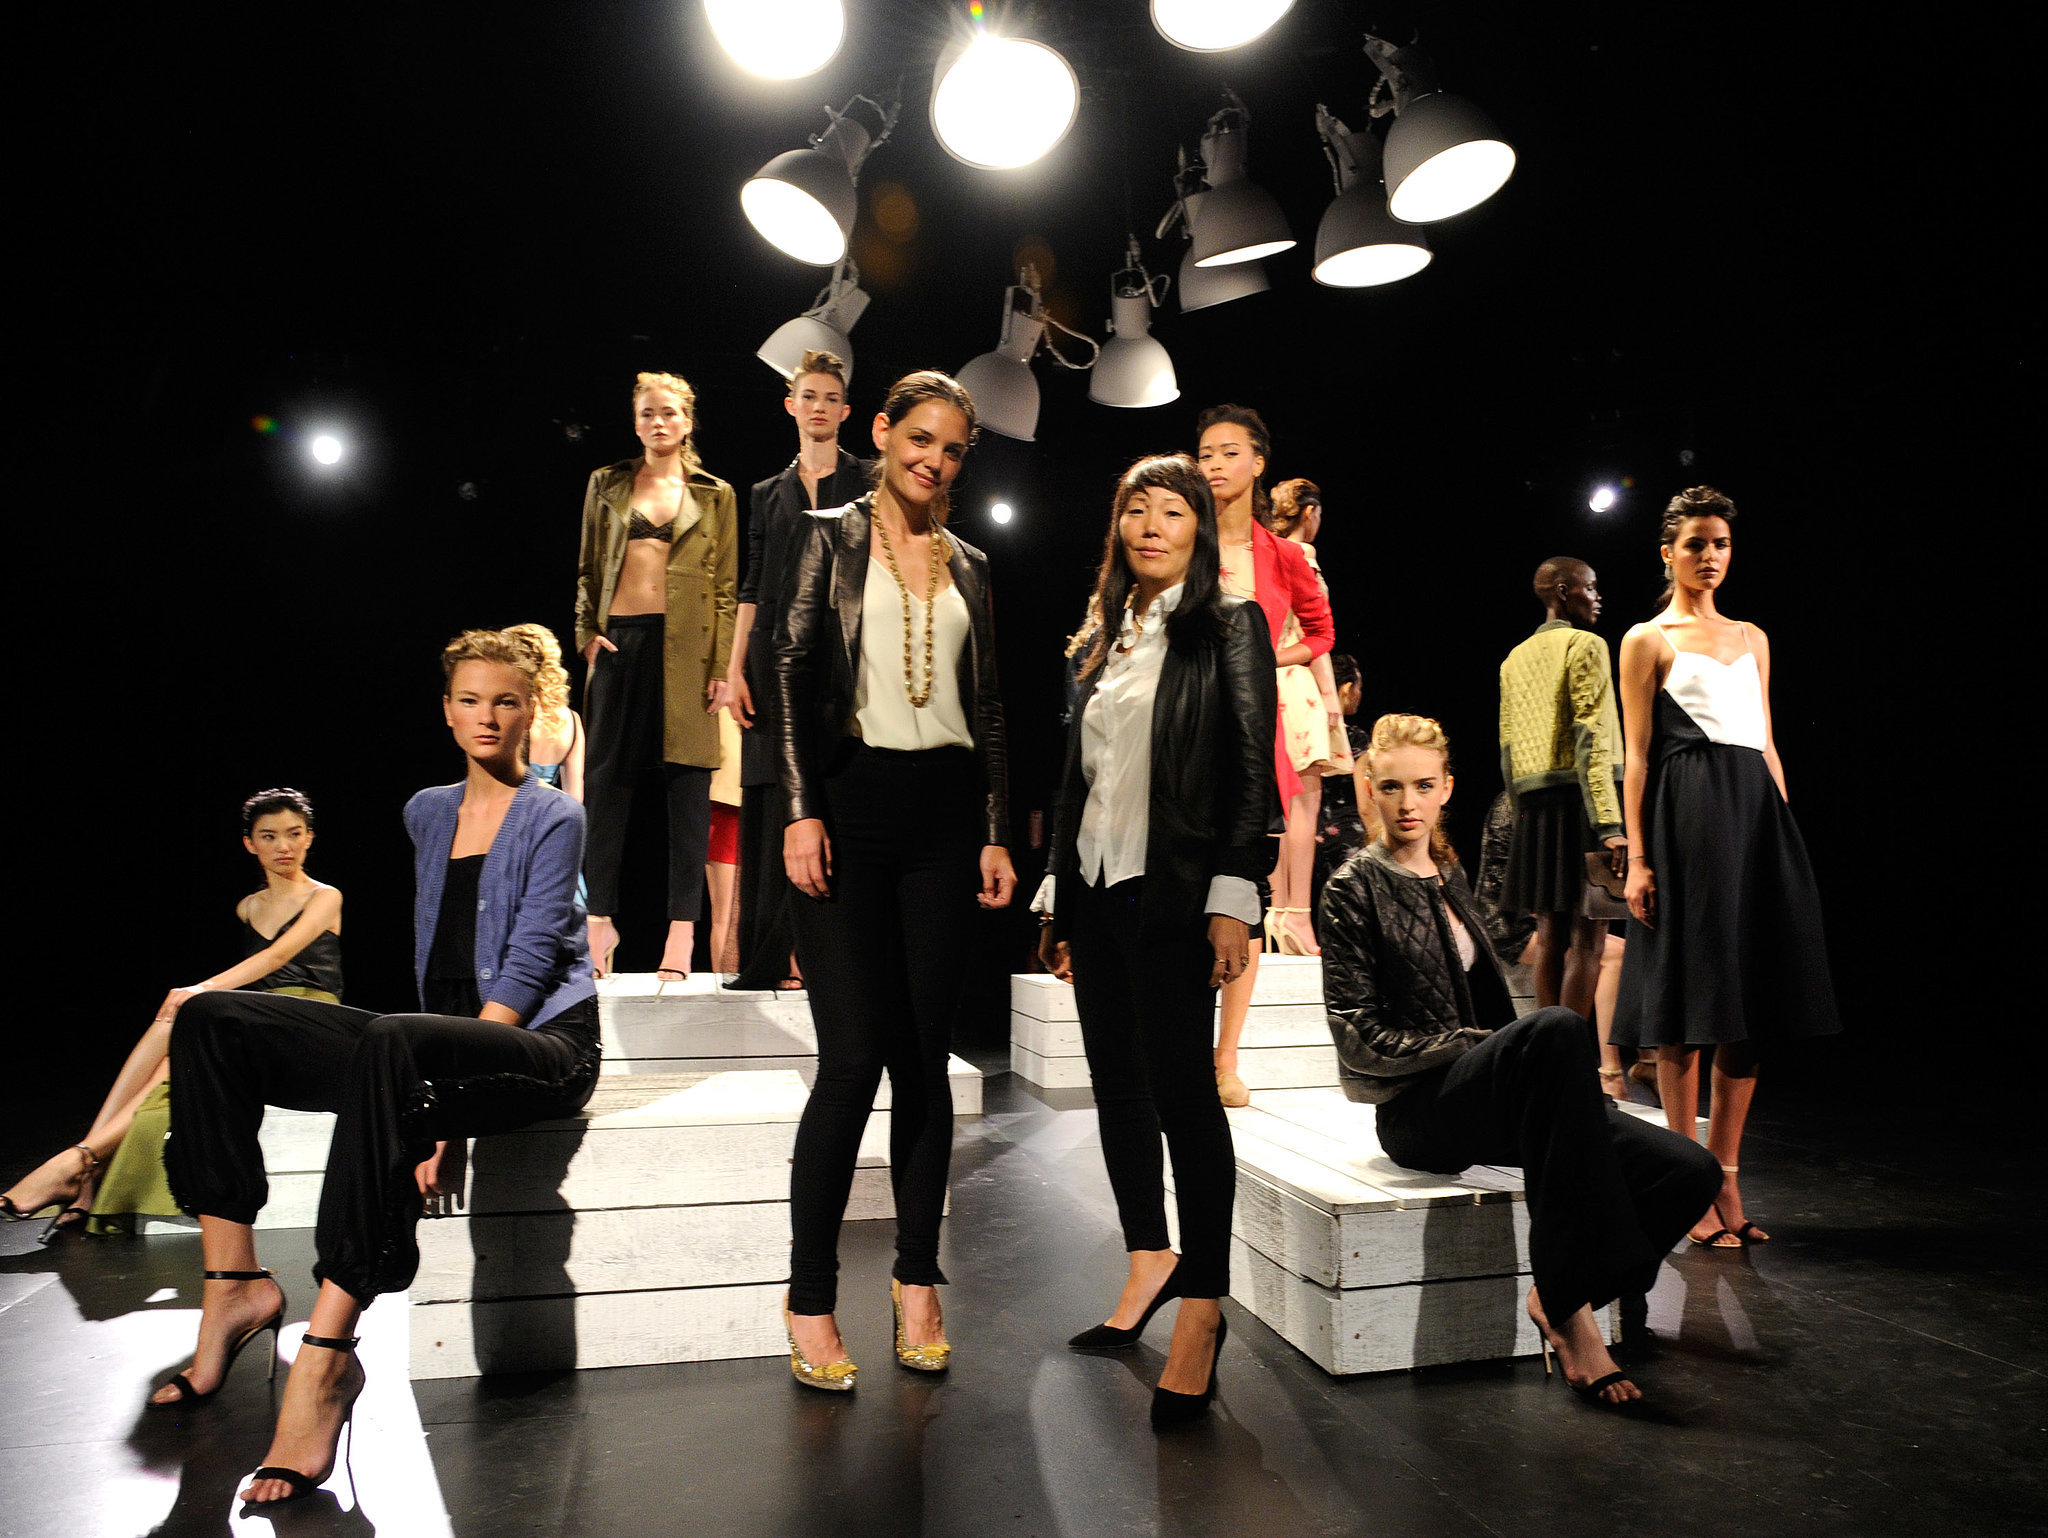 Katie Holmes presented her collection, Holmes & Yang, for the first time at NYFW in September 2012.